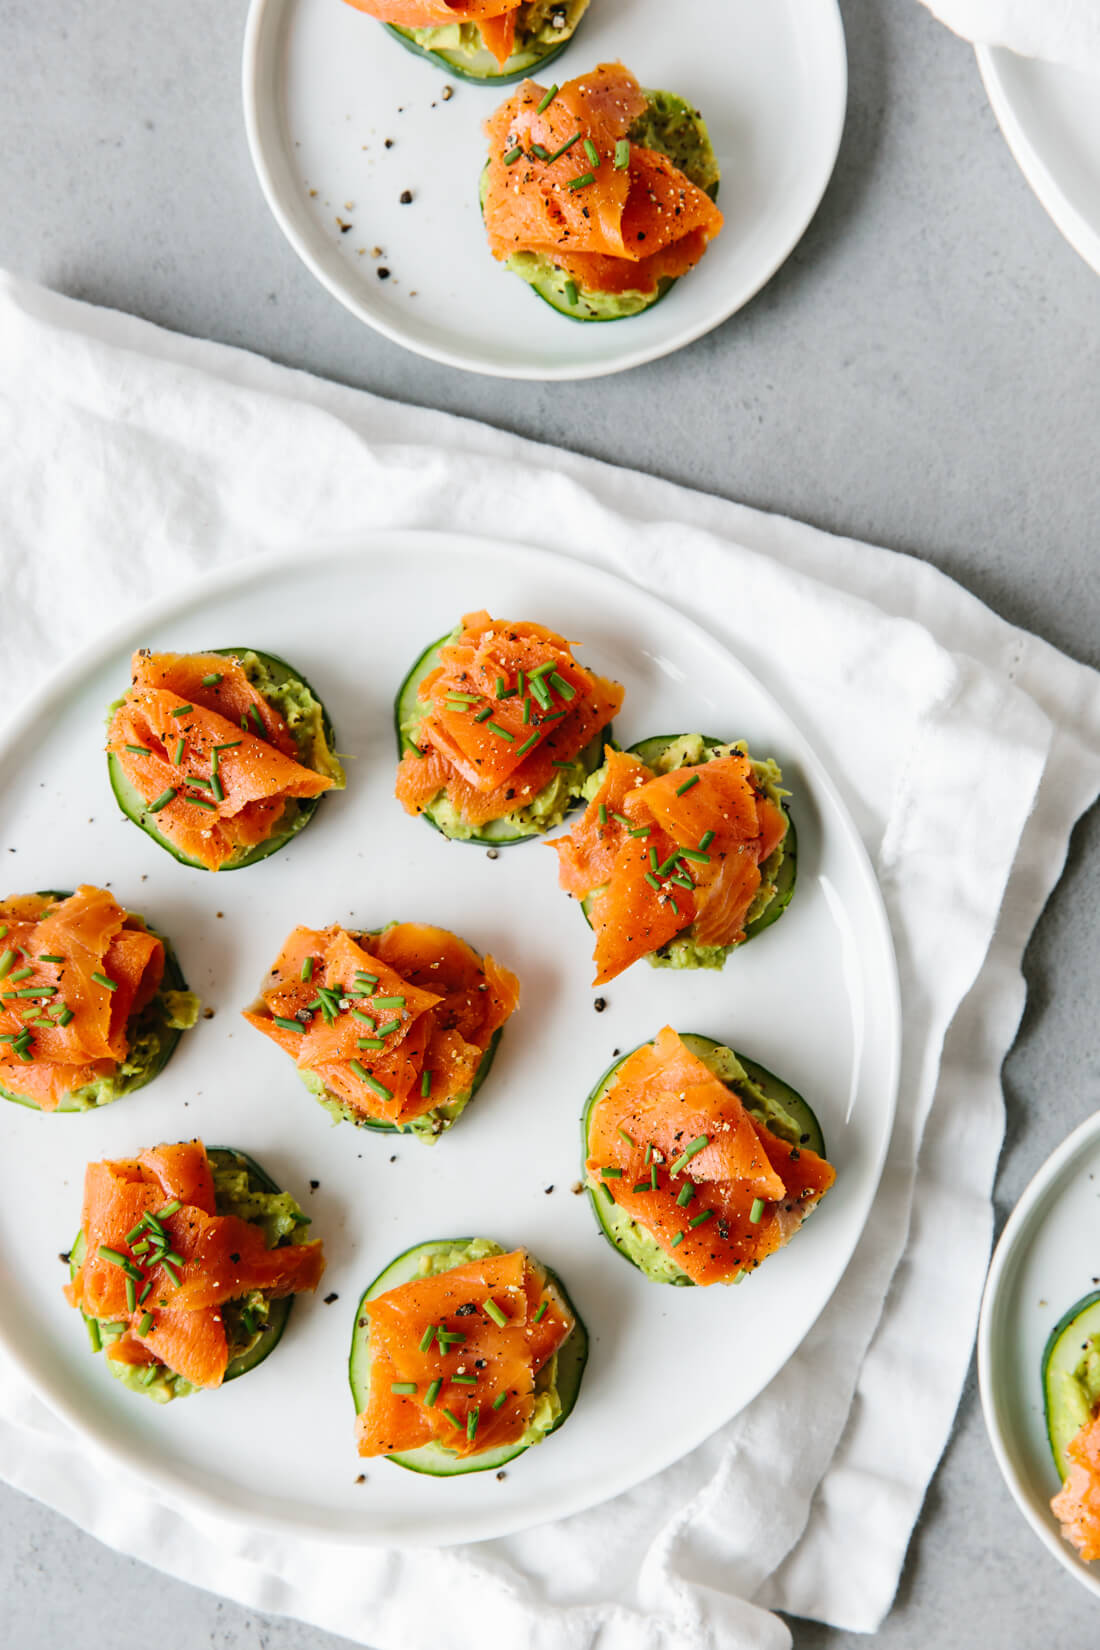 These smoked salmon, avocado and cucumber bites are the perfect healthy appetizer recipe.